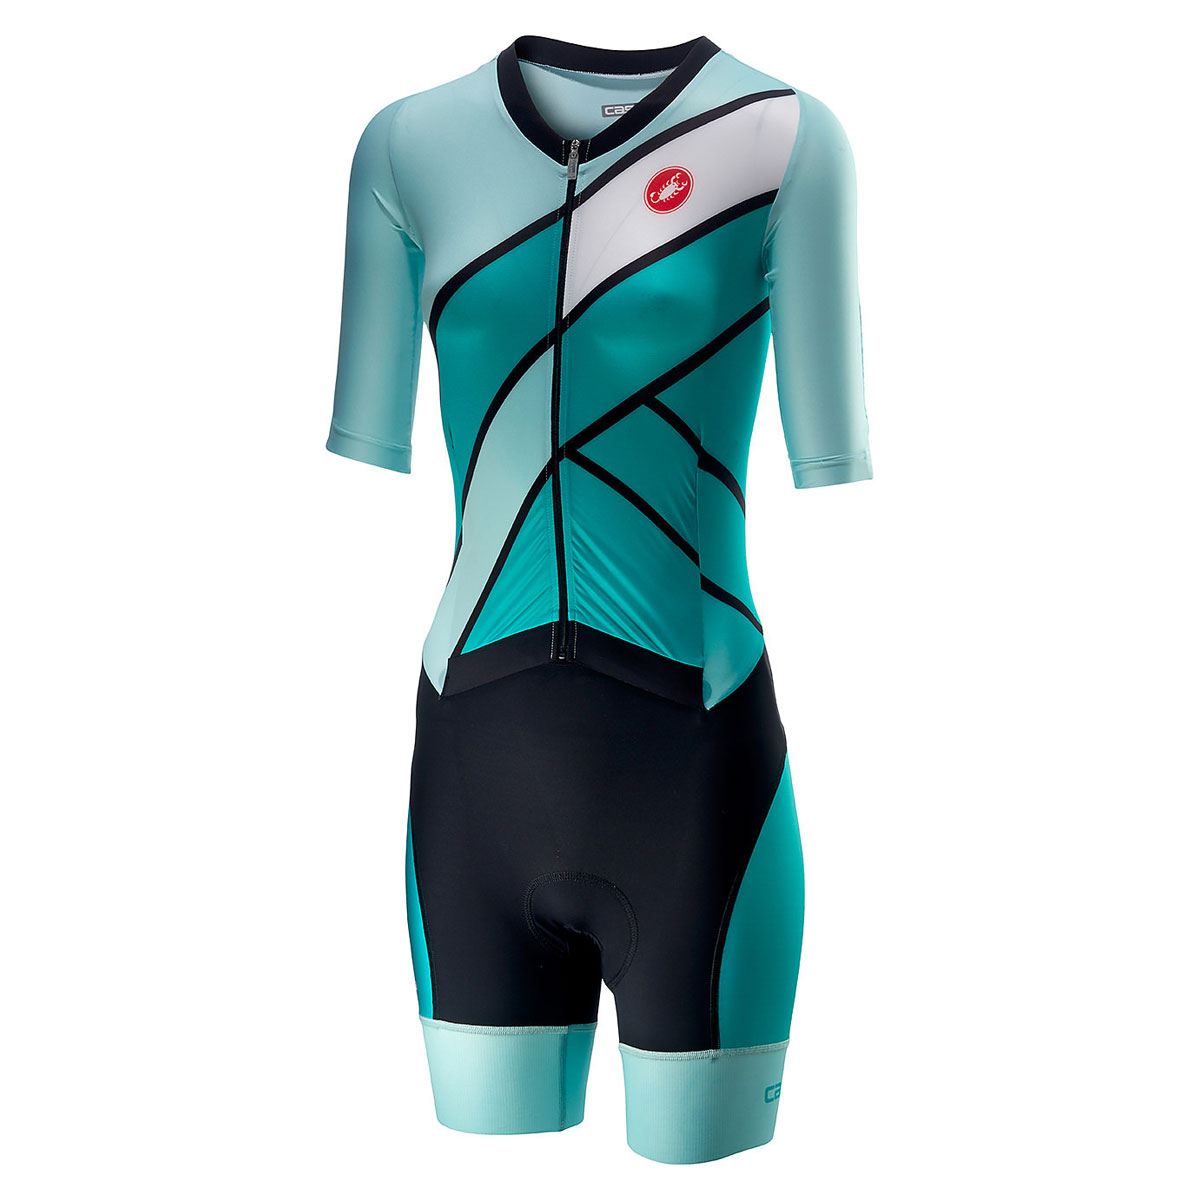 TRI-SUIT CASTELLI ALL OUT COURSE FEMME